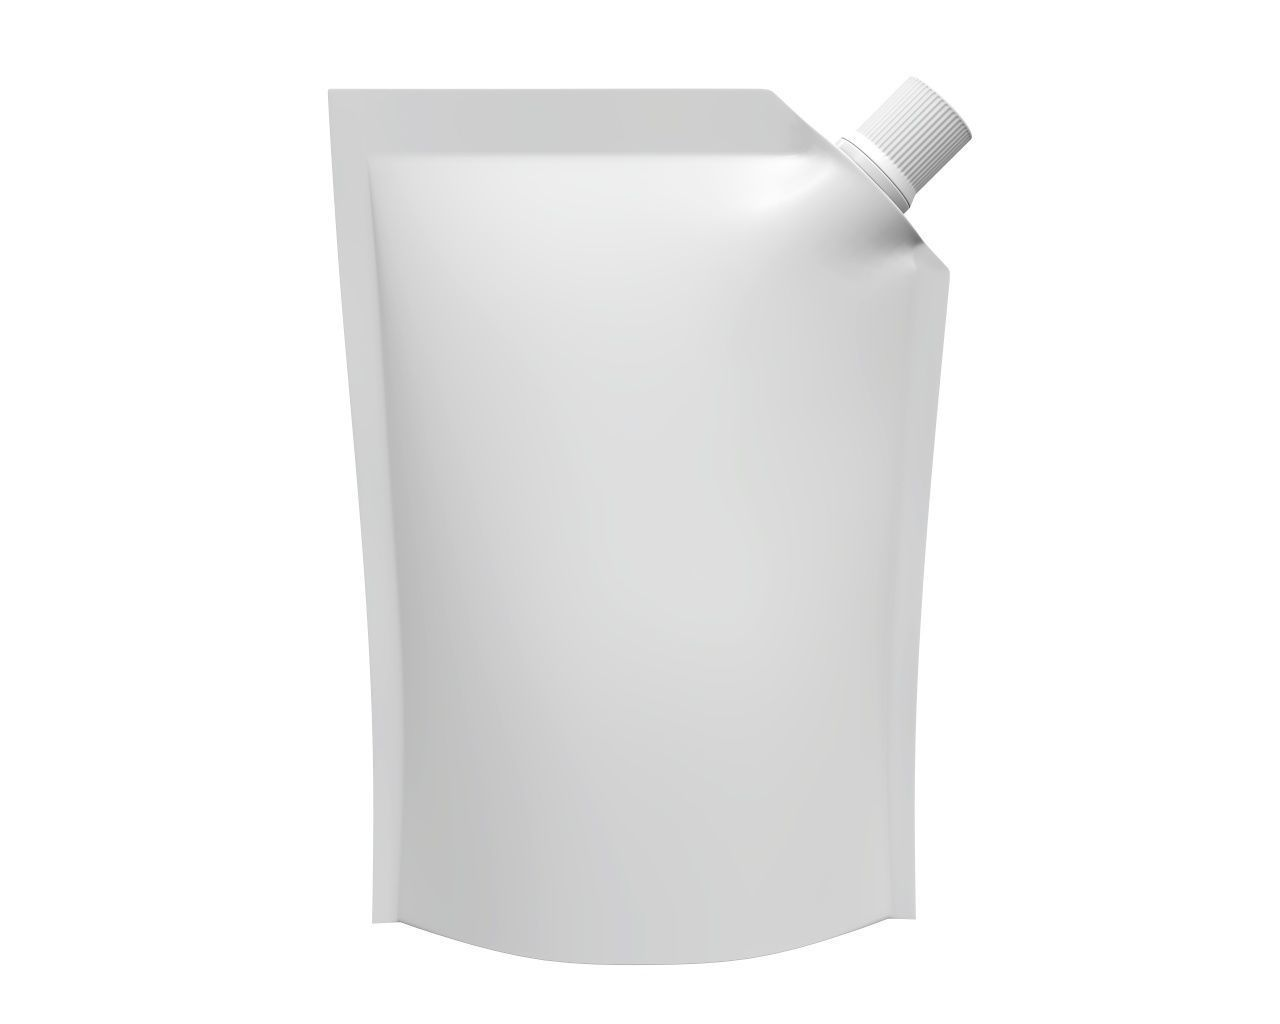 Blank Pouch Bag With Corner Spout Lid Mock Up 03